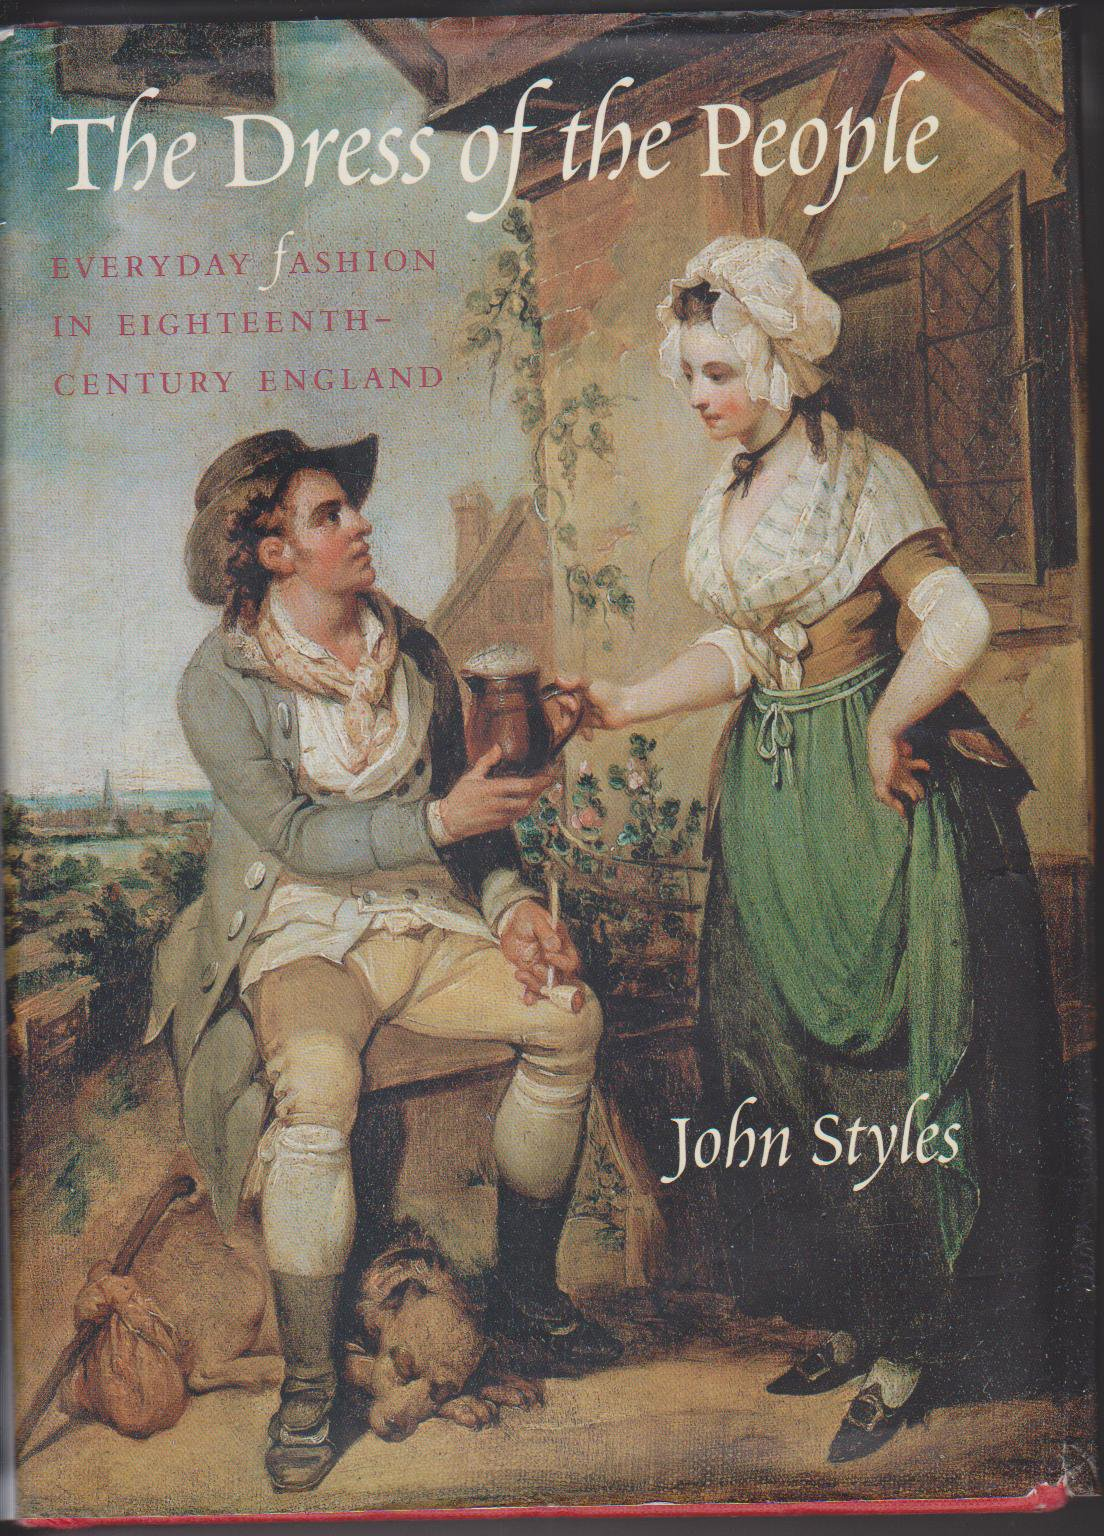 Dress of the People - John Styles - History of English Costume - Georgian Clothing - HandBound Costumes Bibliography